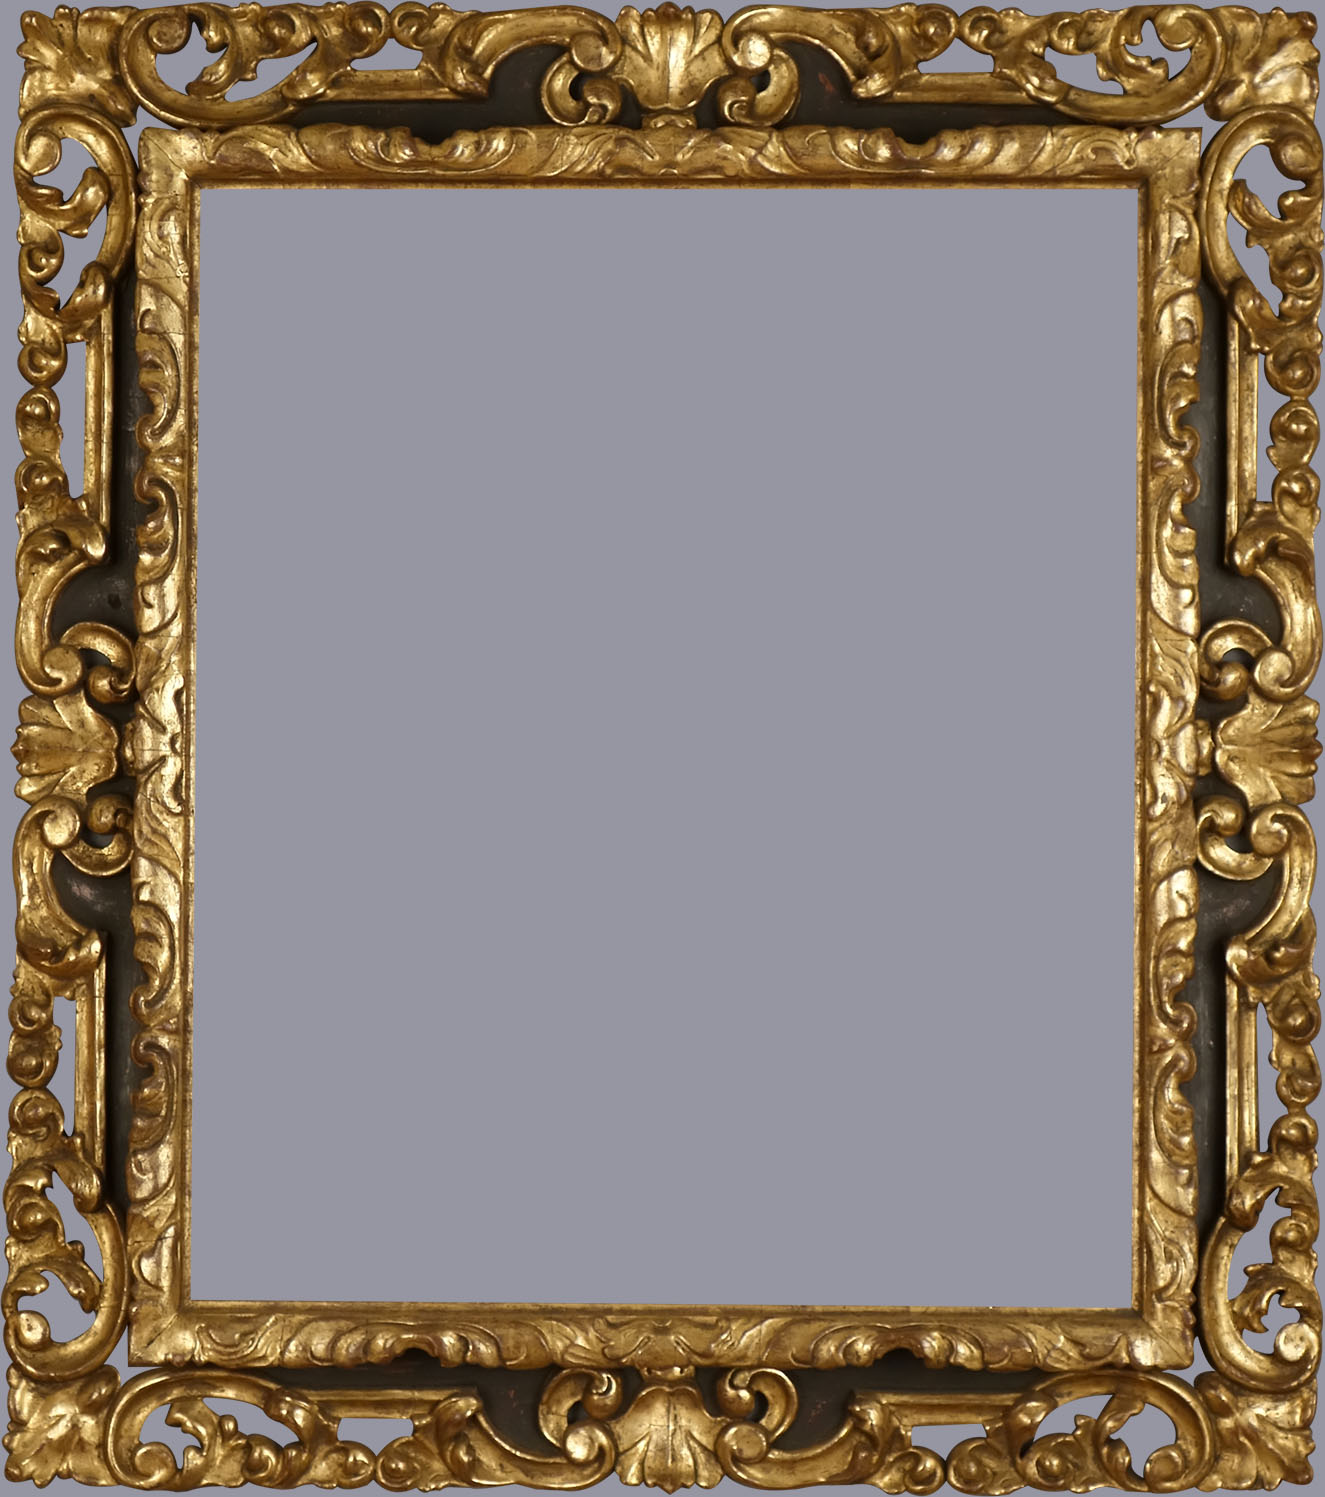 Atelier richard boerth antique mirrored glass part i frame 4215 435000 jeuxipadfo Image collections